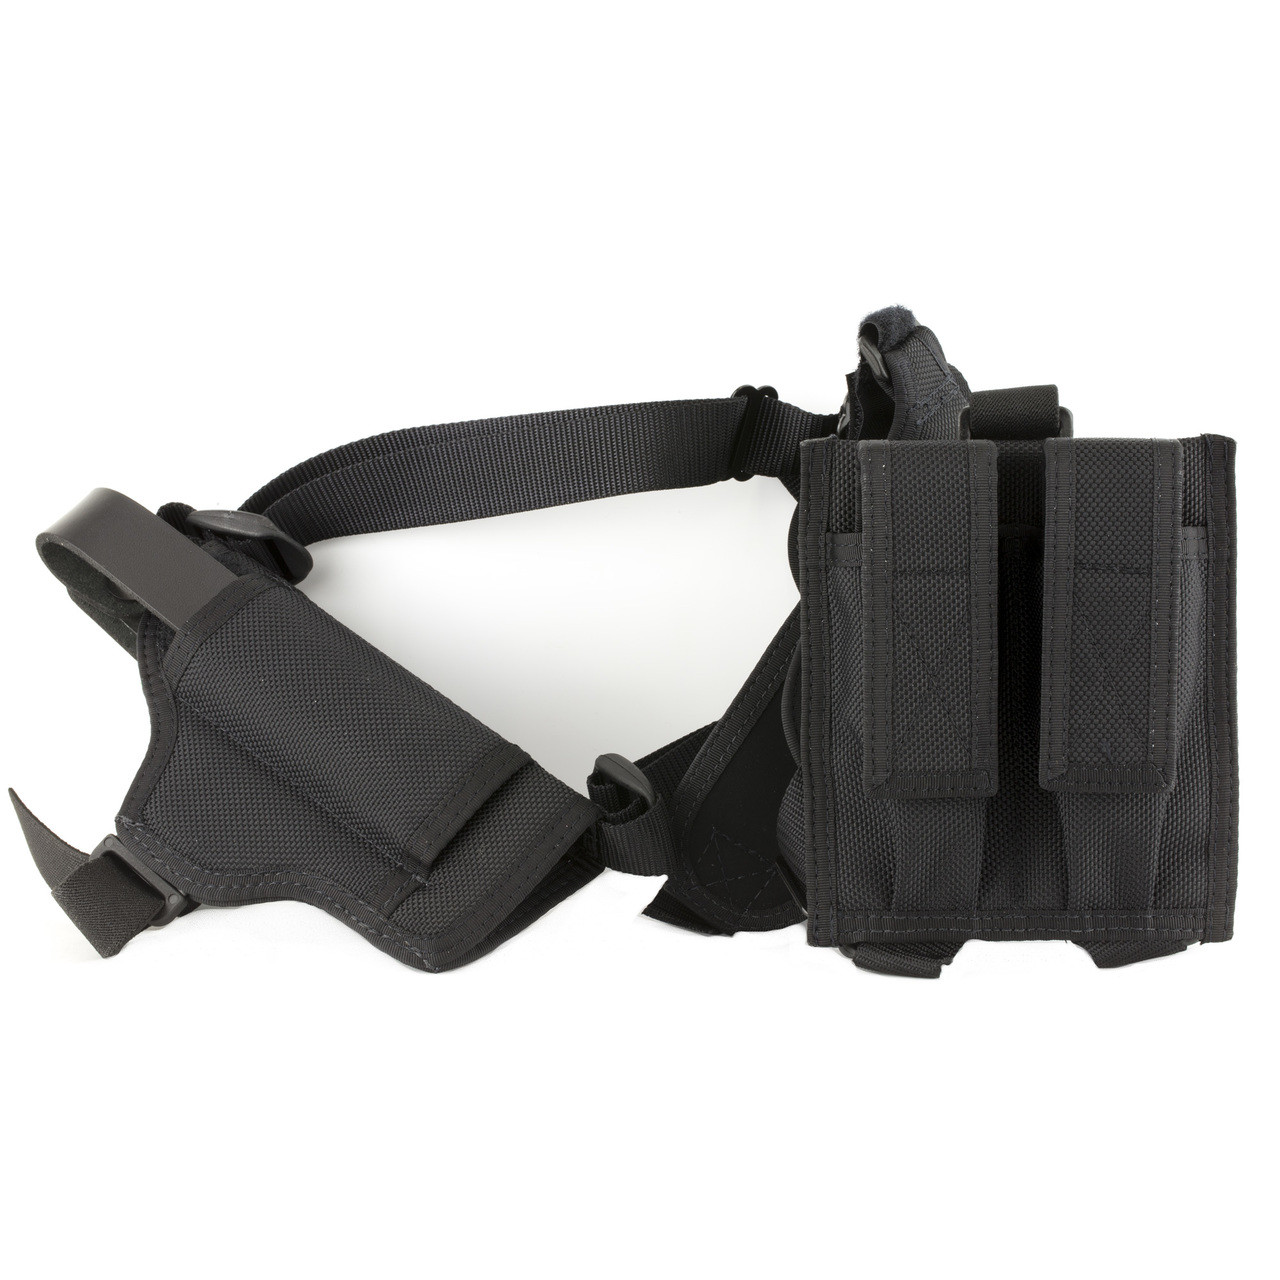 Desantis Patriot Shoulder Holster, Fits PX4, Black N84BJE4J0, UPC  :792695257431